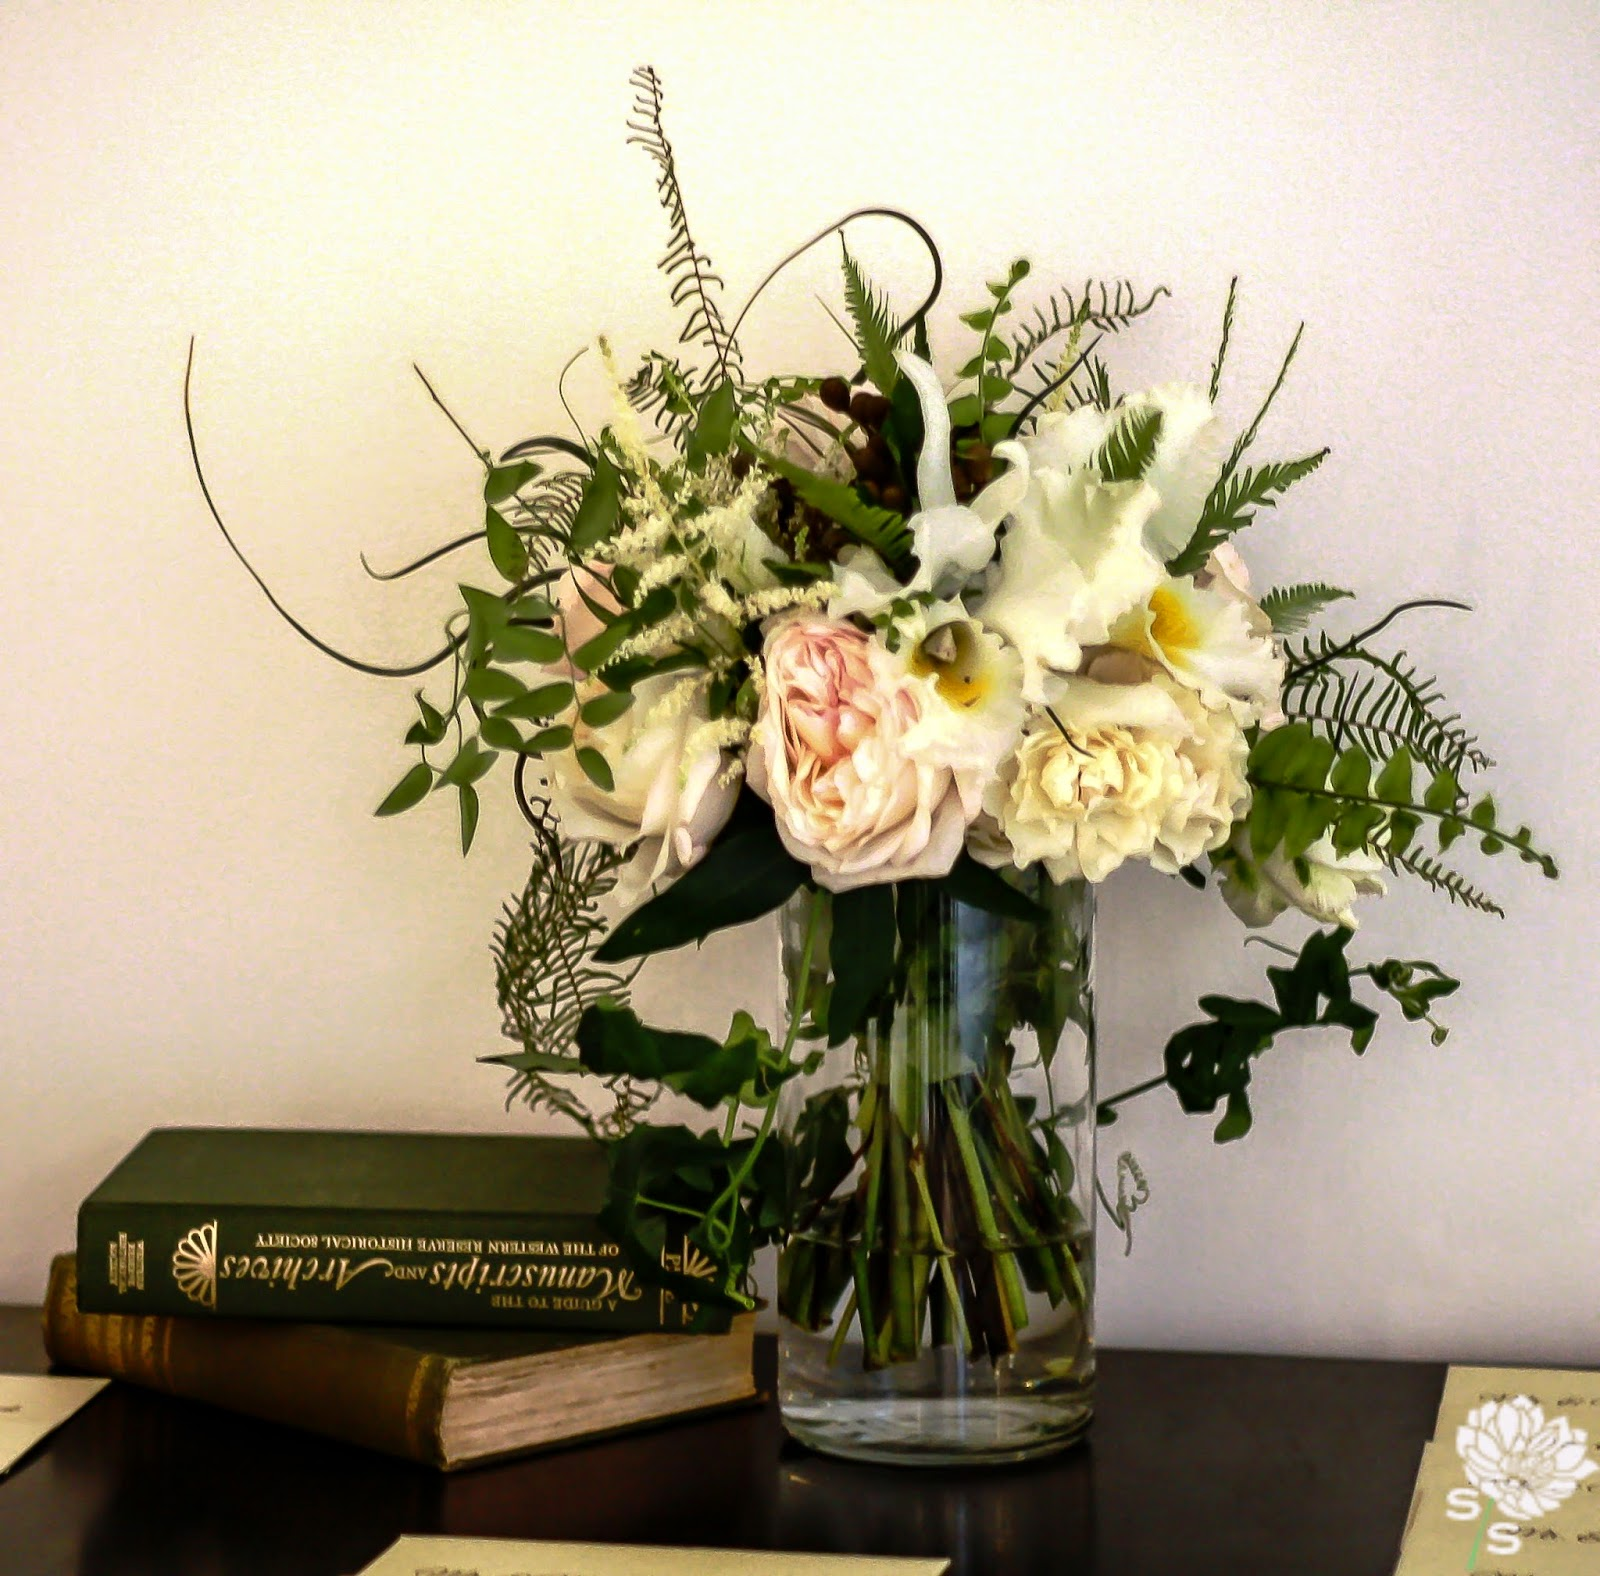 The Roundhouse Wedding - Beacon, NY - Hudson Valley Wedding - Wedding Flowers - Splendid Stems Floral Designs